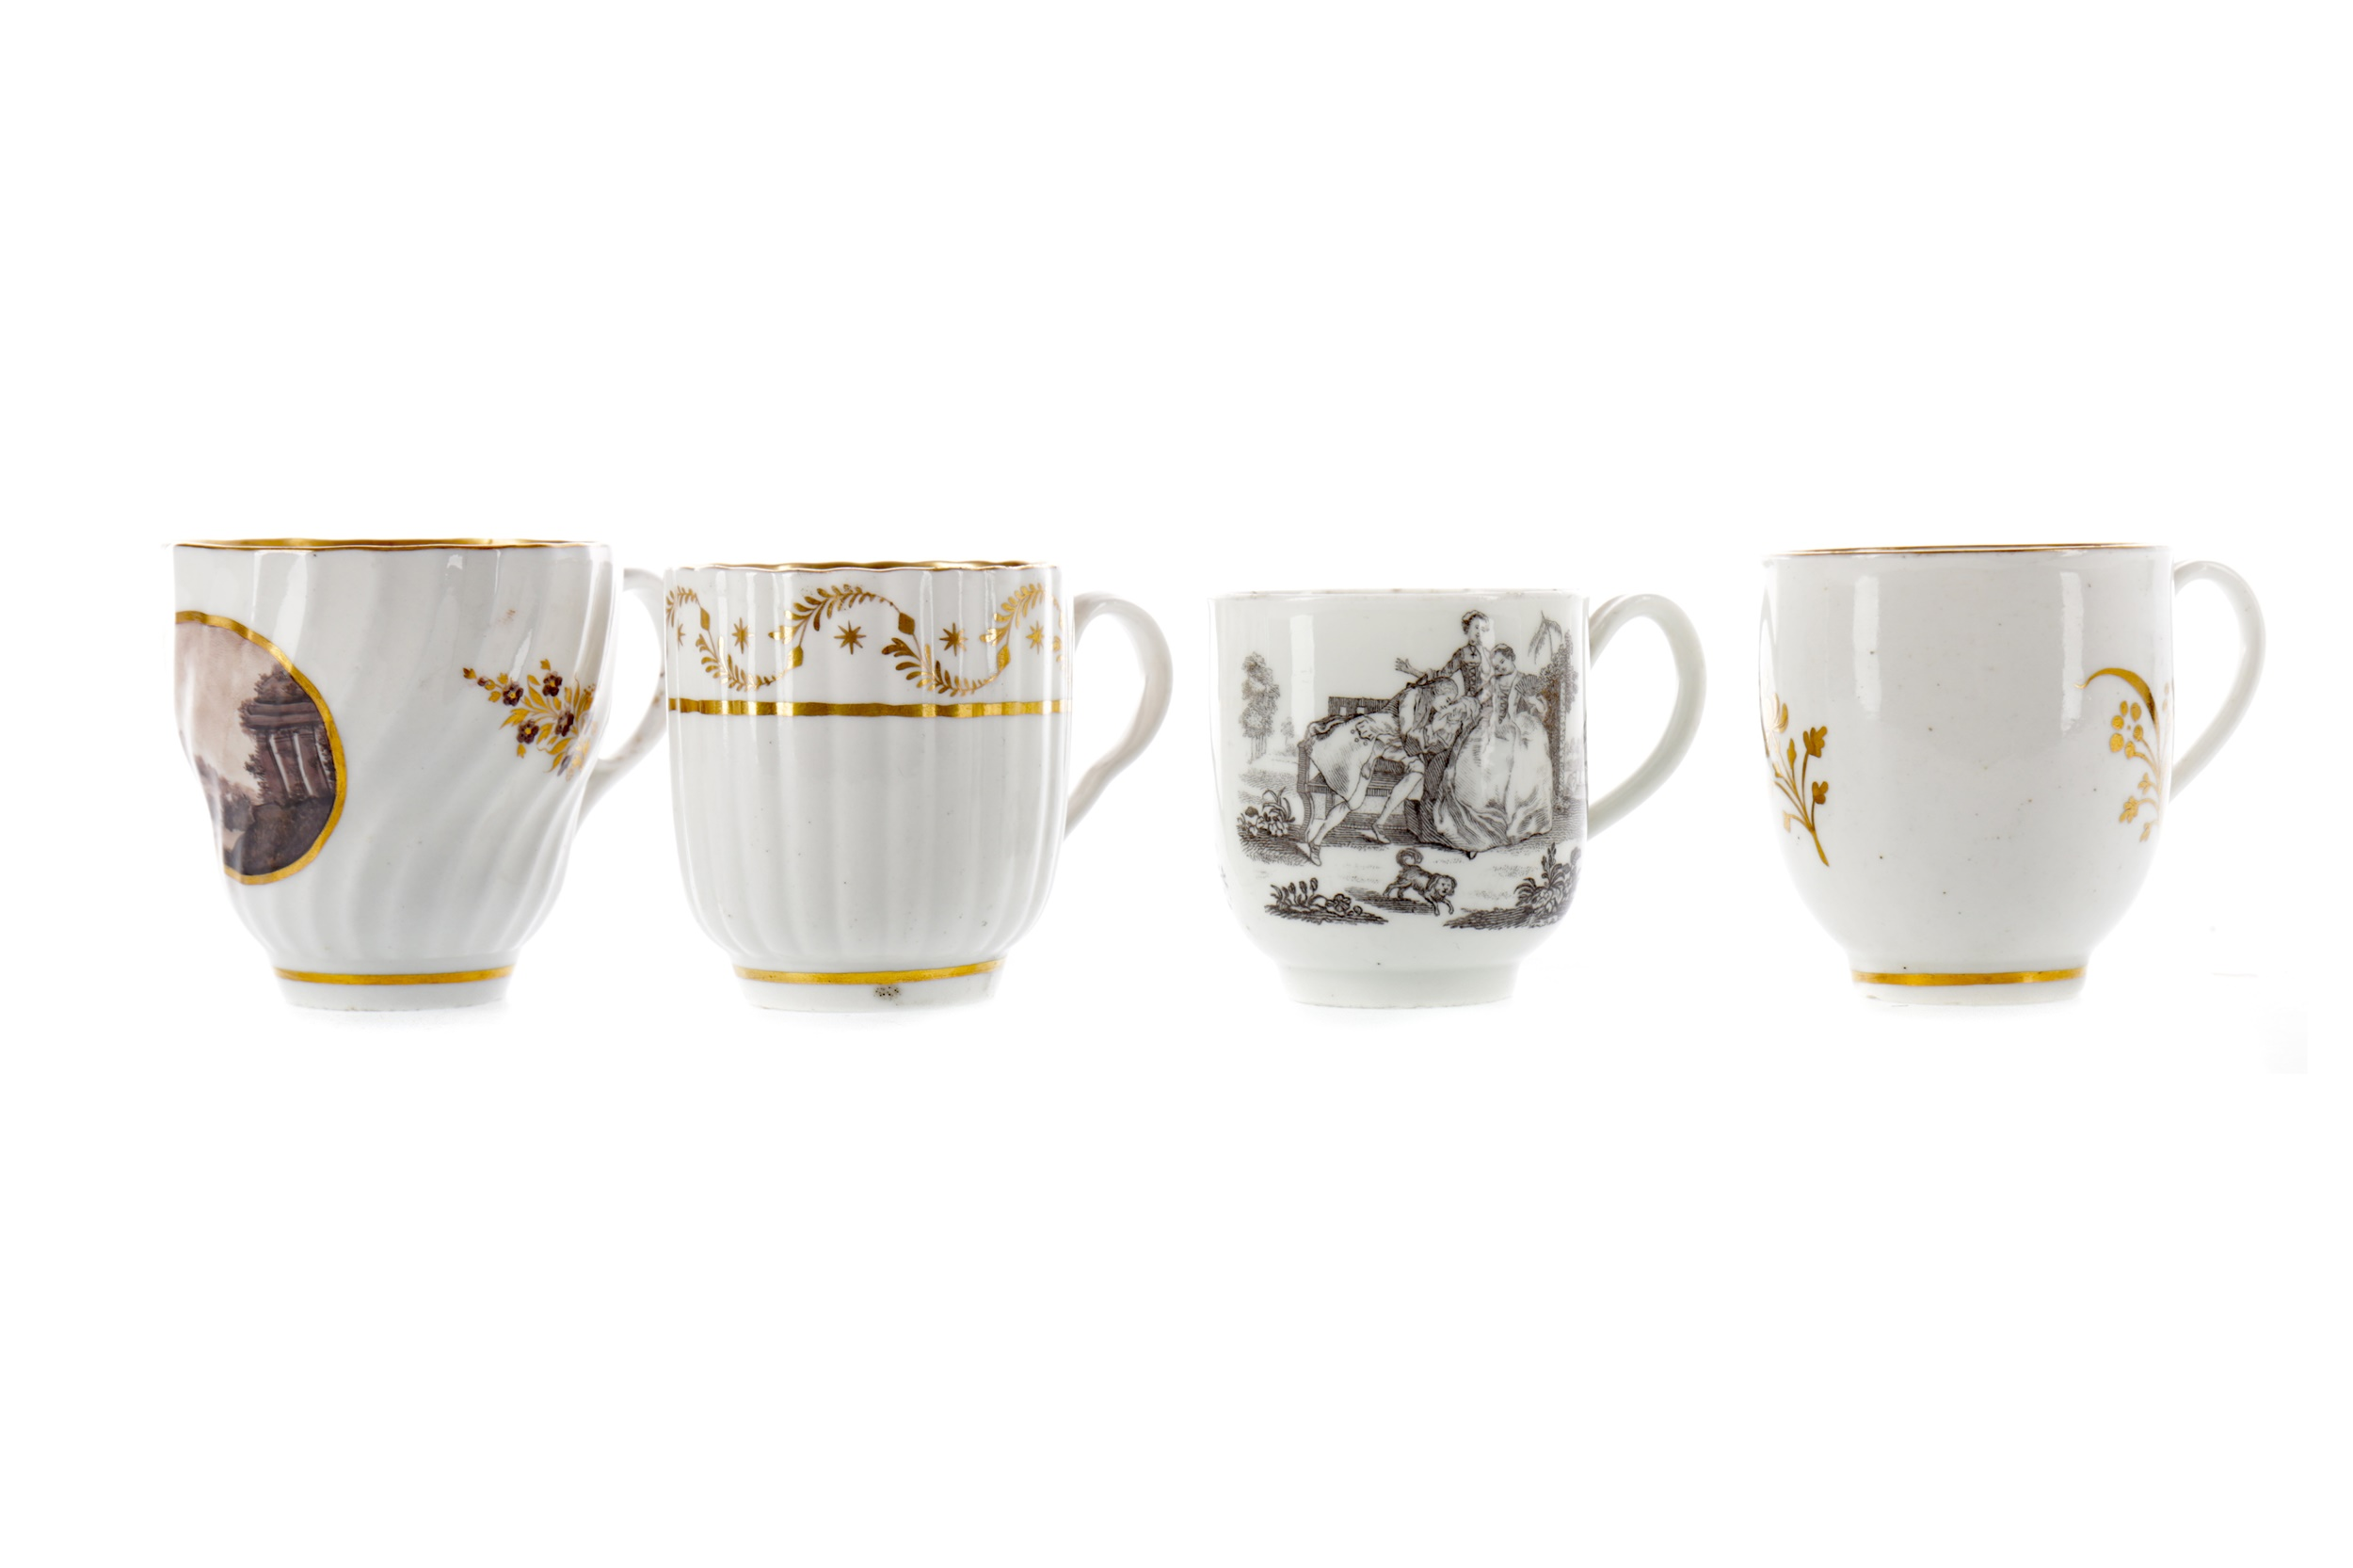 A LATE 18TH CENTURY TEACUP, ALONG WITH THREE OTHERS